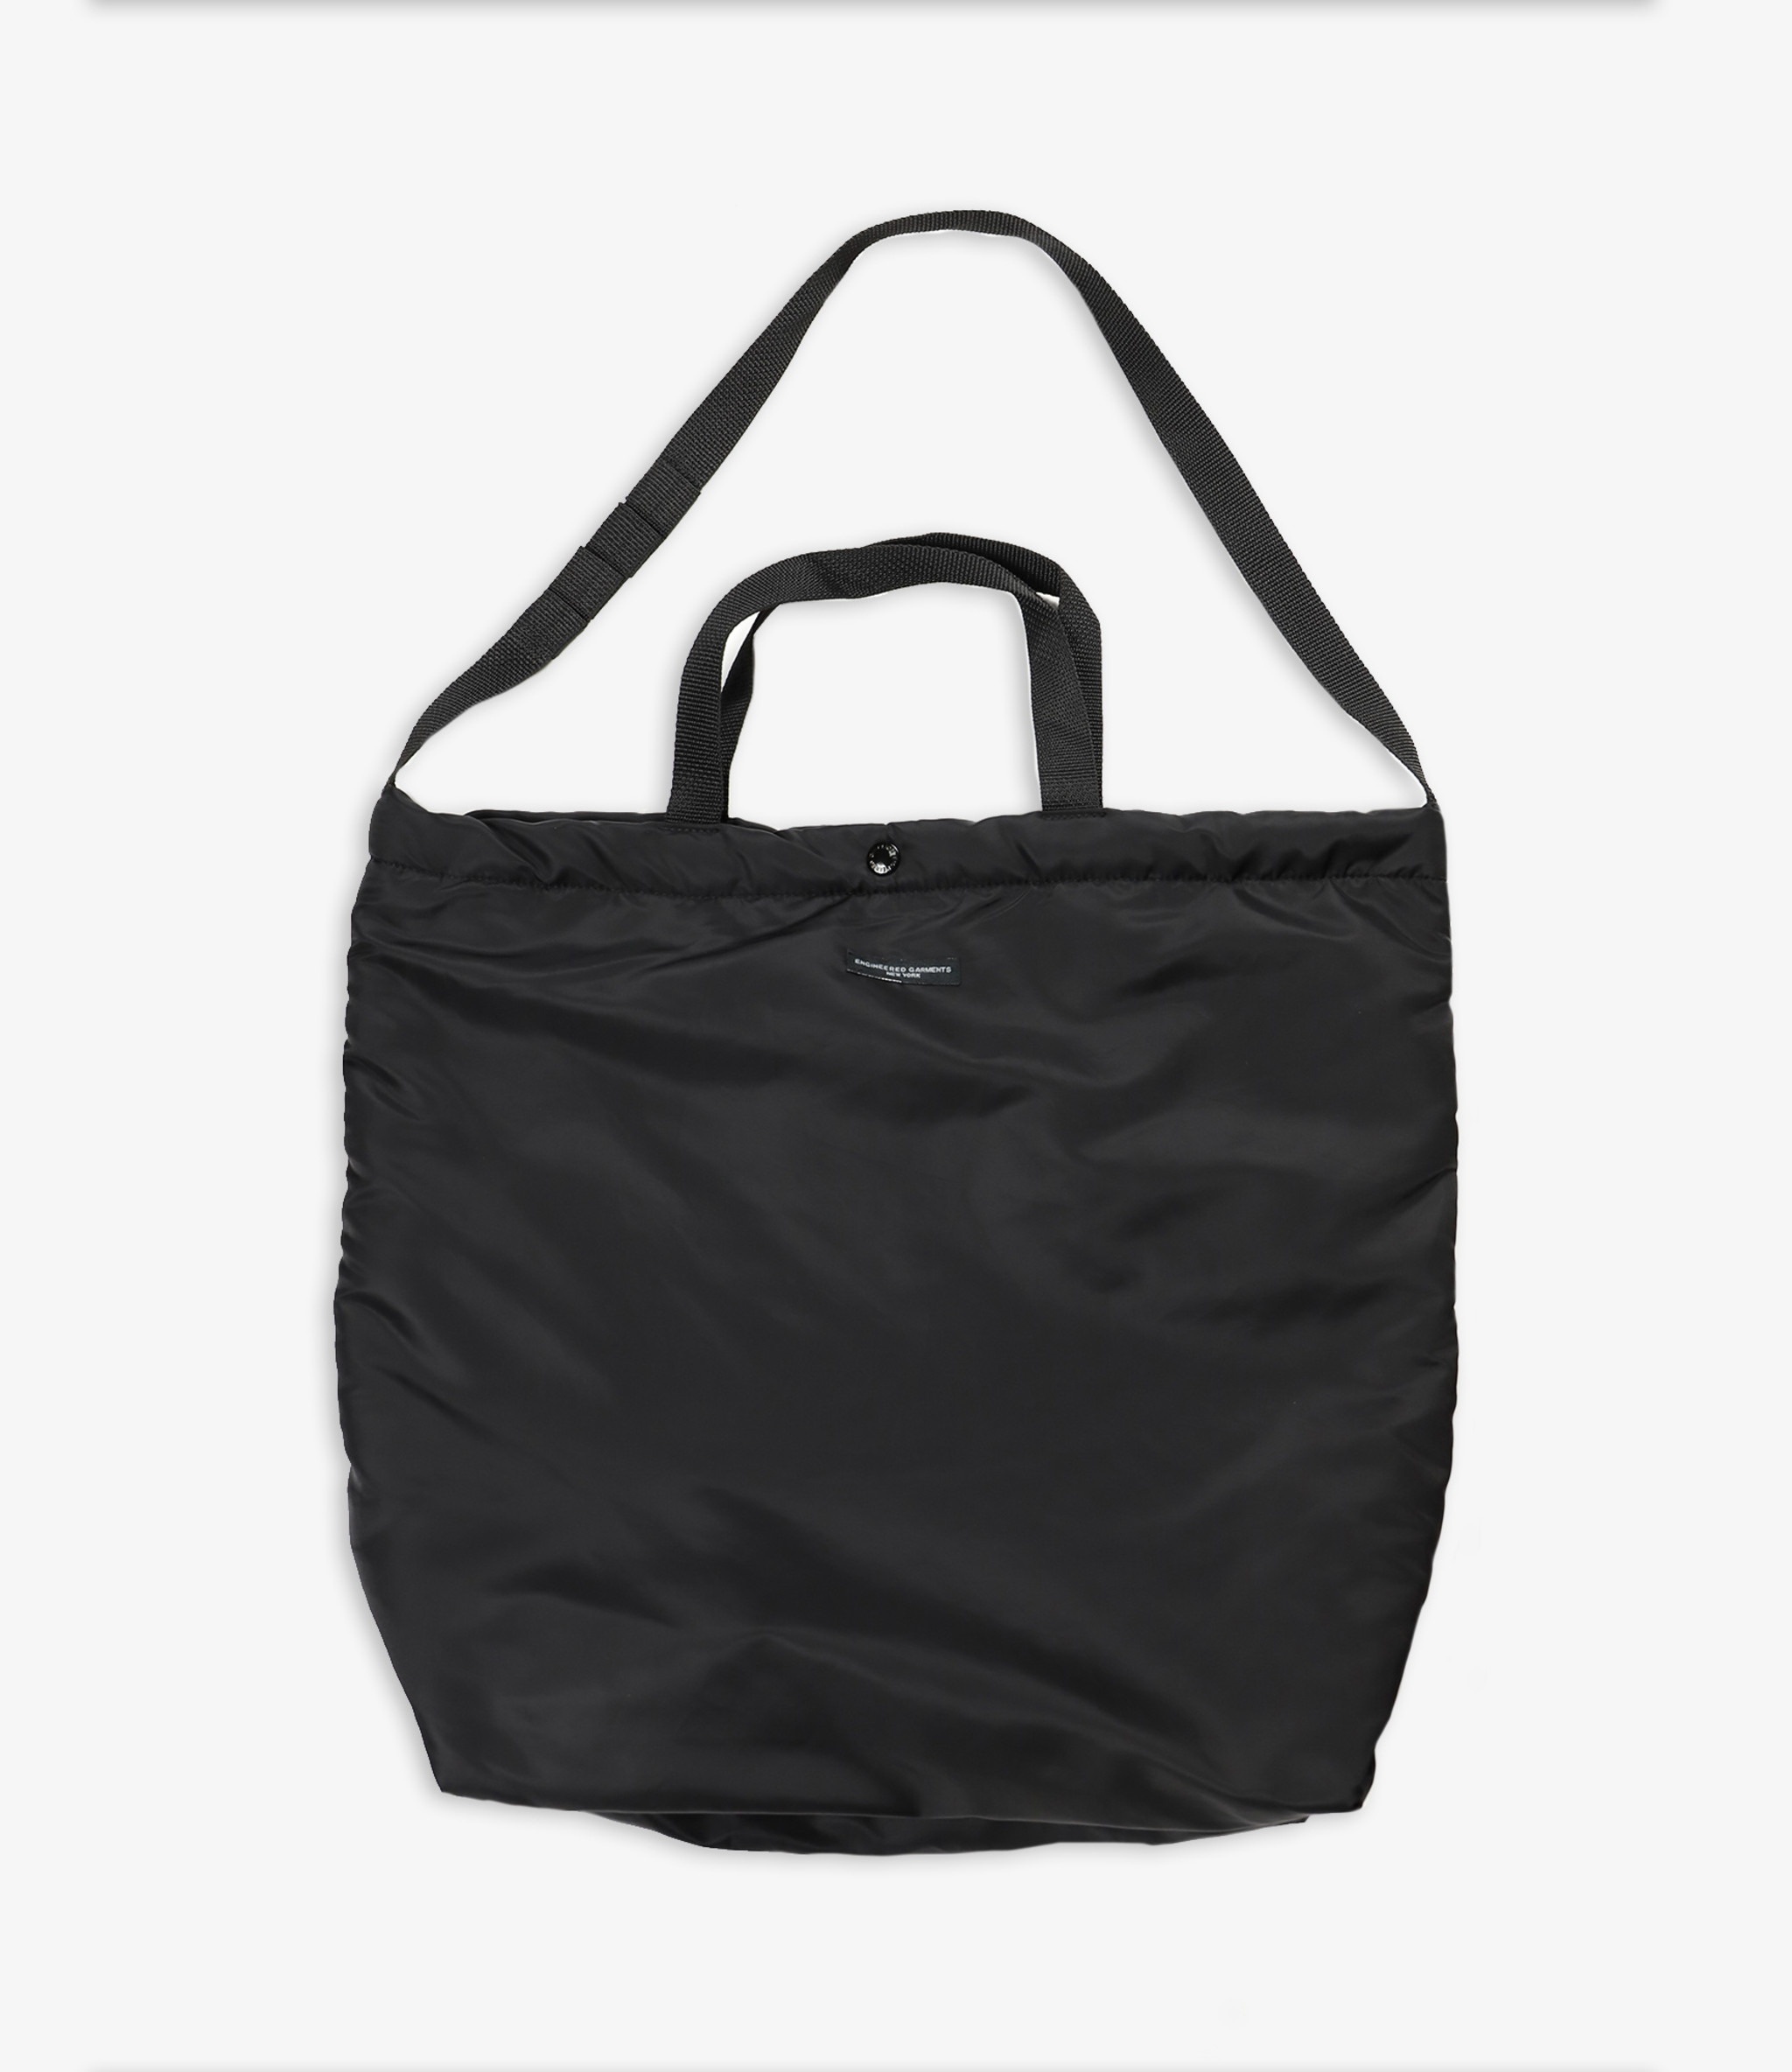 Engineered Garments Carry All Tote - Black Flight Satin Nylon